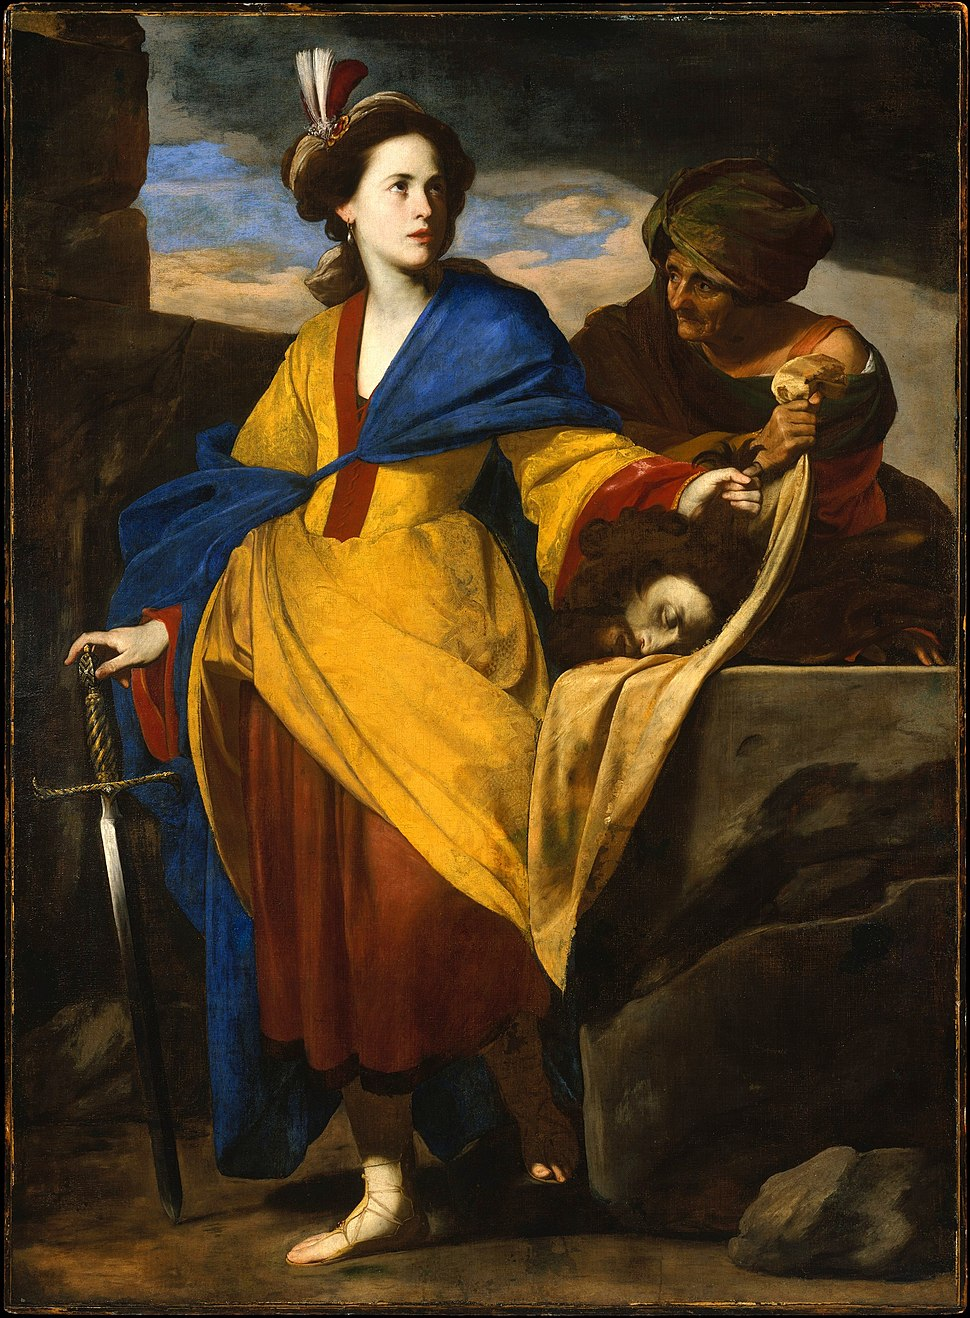 Stanzione, Massimo - Judith with the Head of Holofernes - c. 1630–35